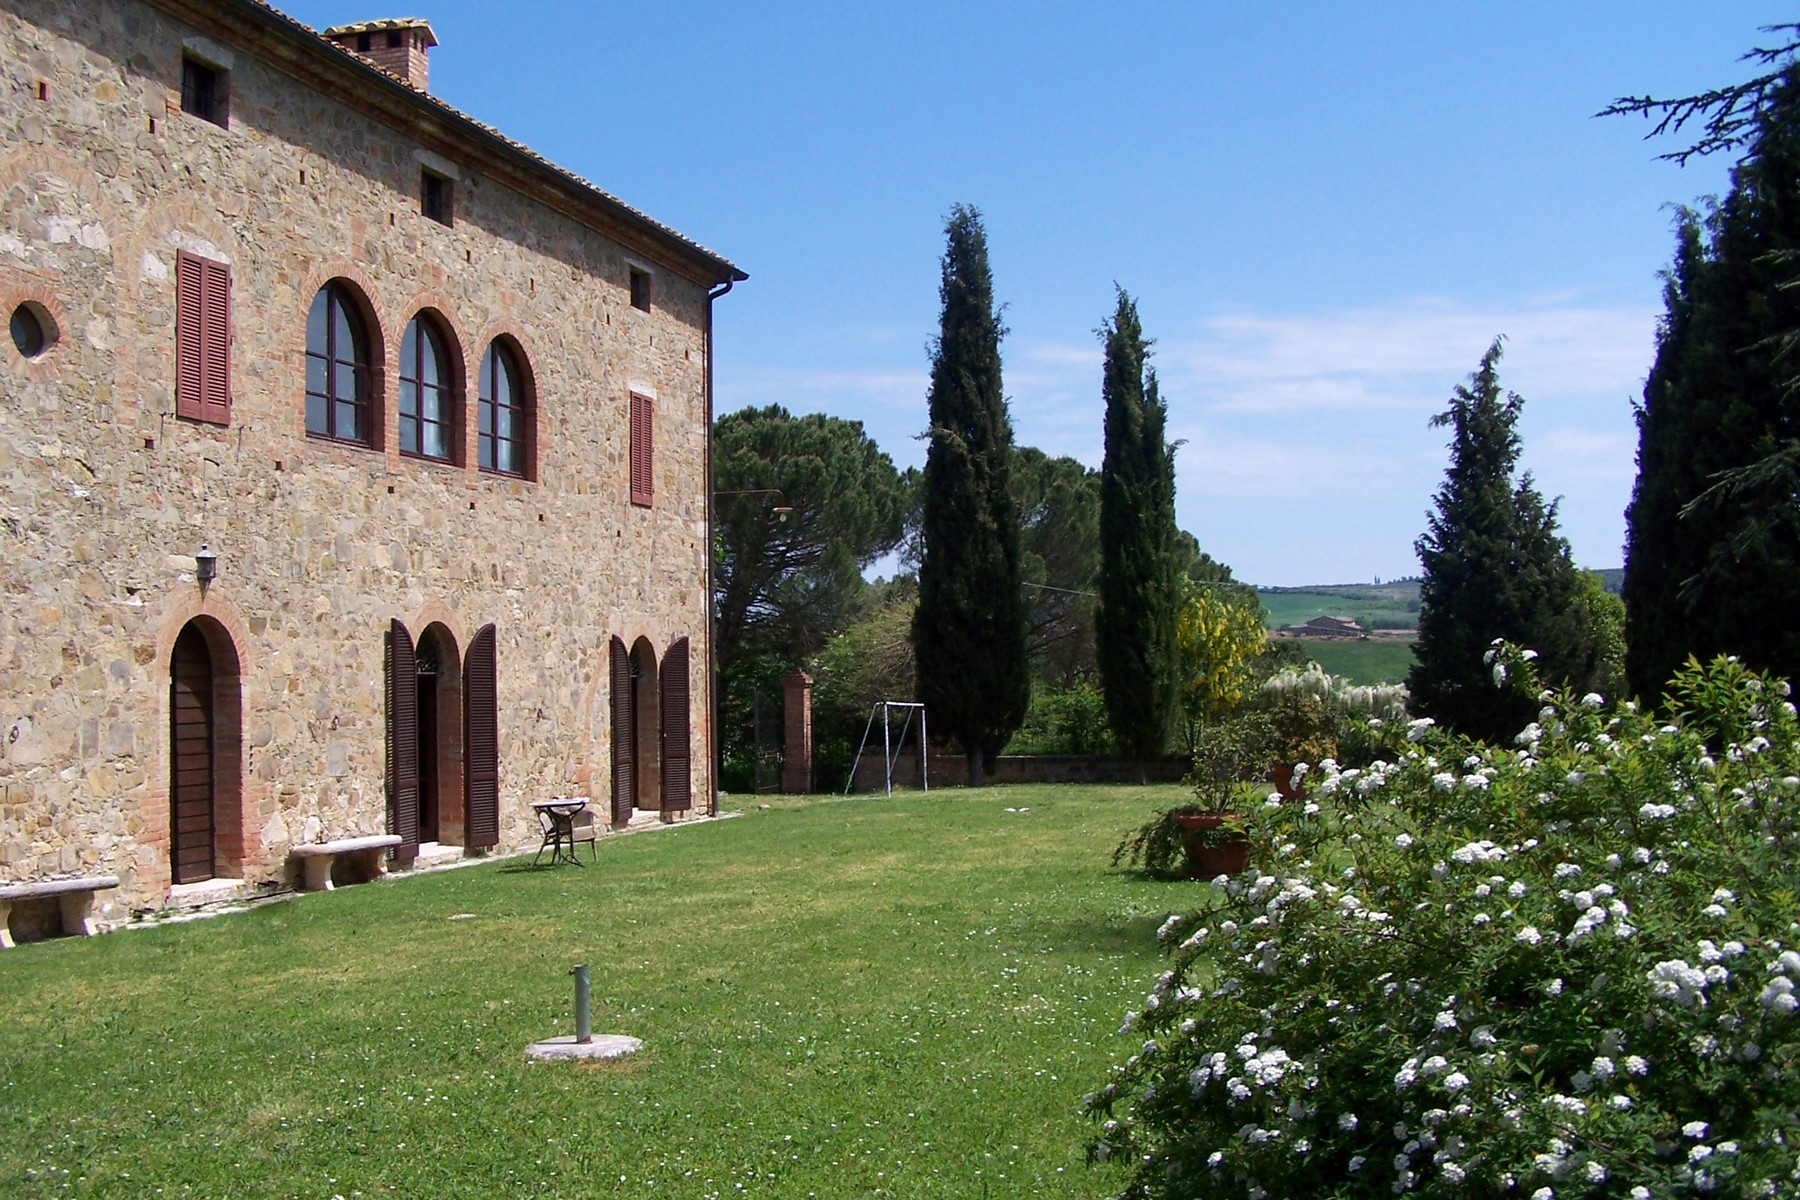 独户住宅 为 销售 在 Beautiful XVI century villa in Siena countryside Montalcino-Val D'Orcia 蒙塔尔奇诺, 锡耶纳, 53024 意大利